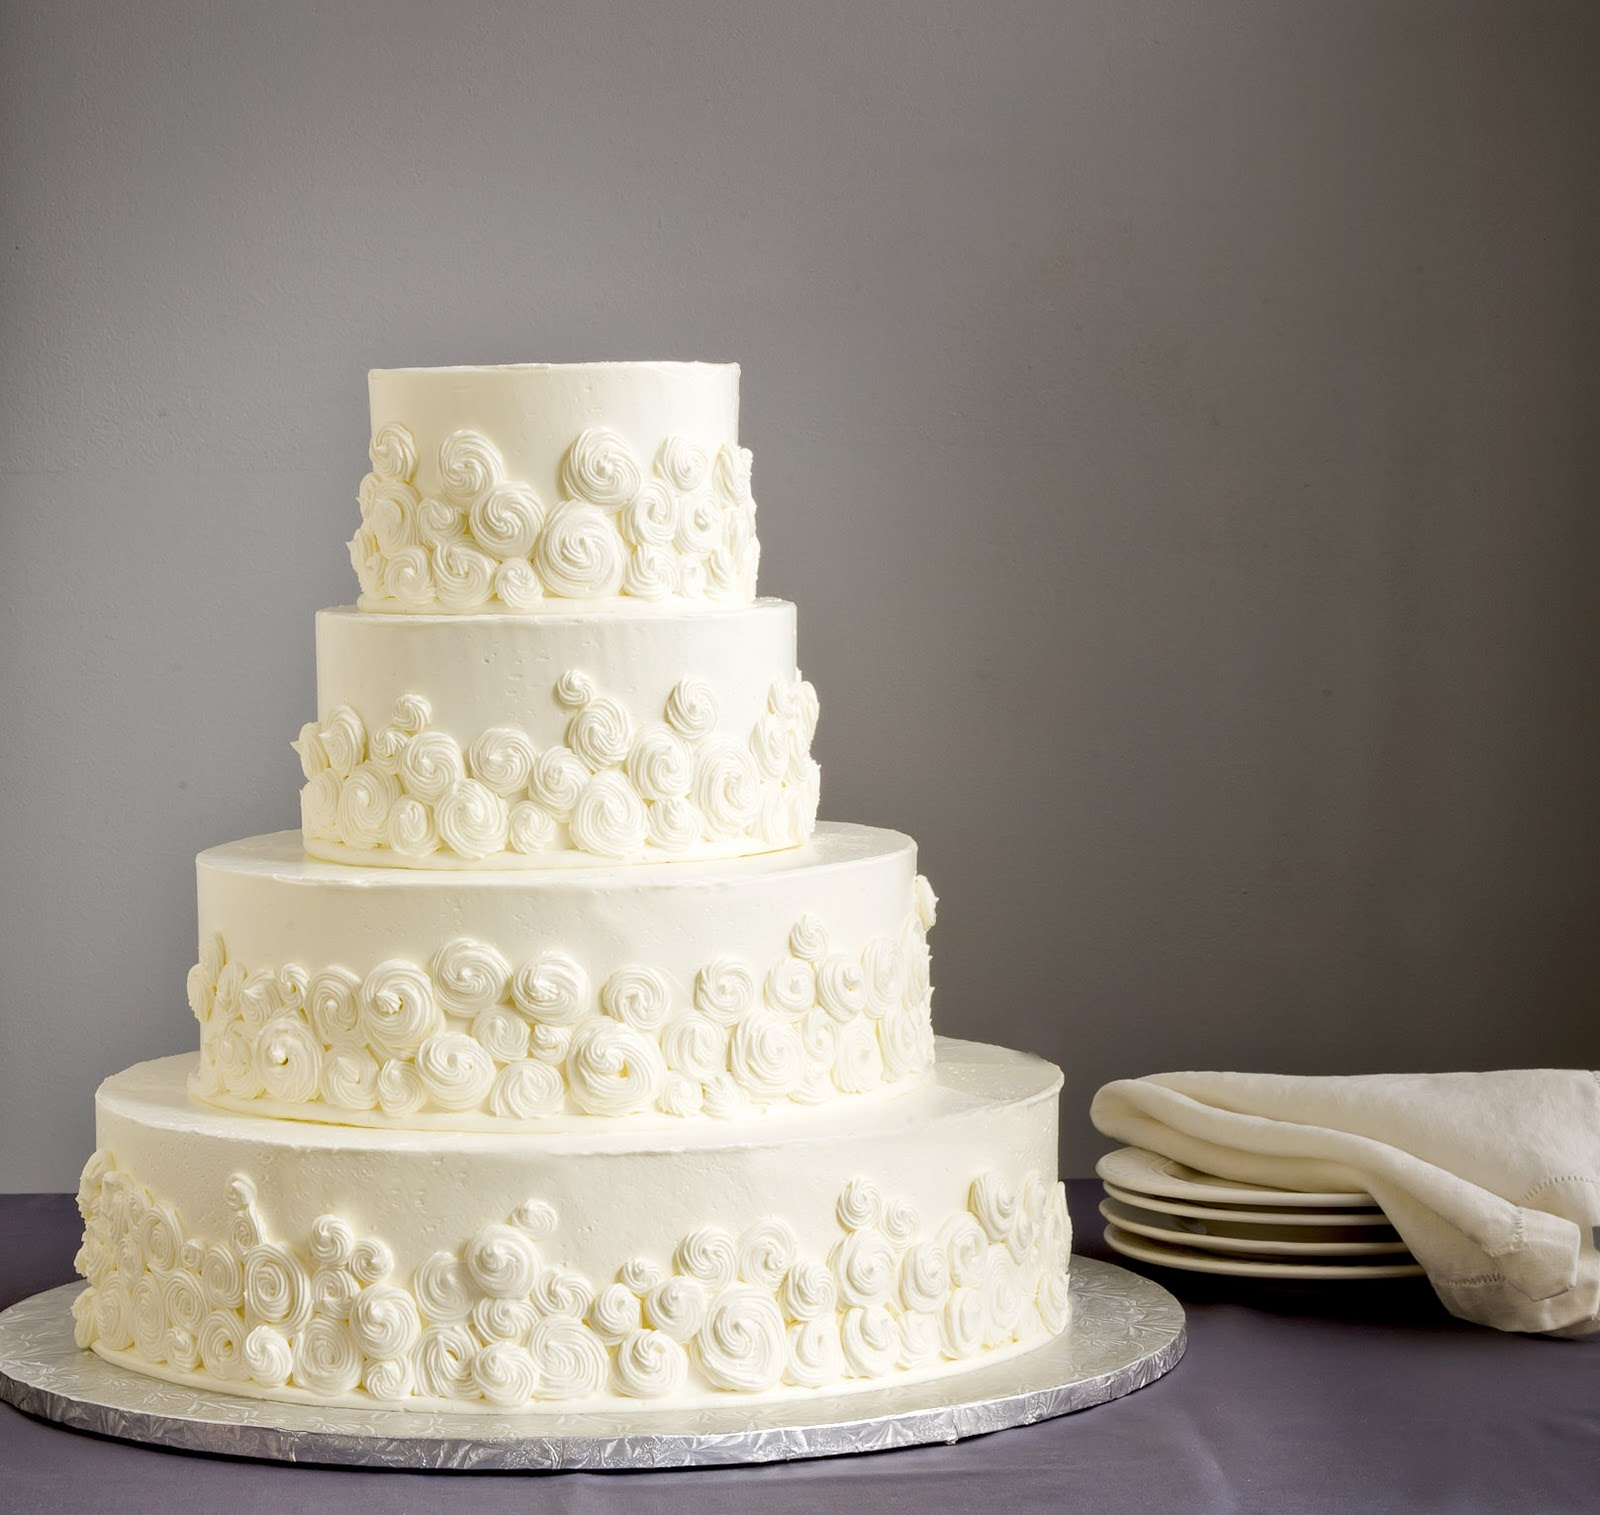 THREE NEW Wedding Cake Ideas Culinary Crossroads ...